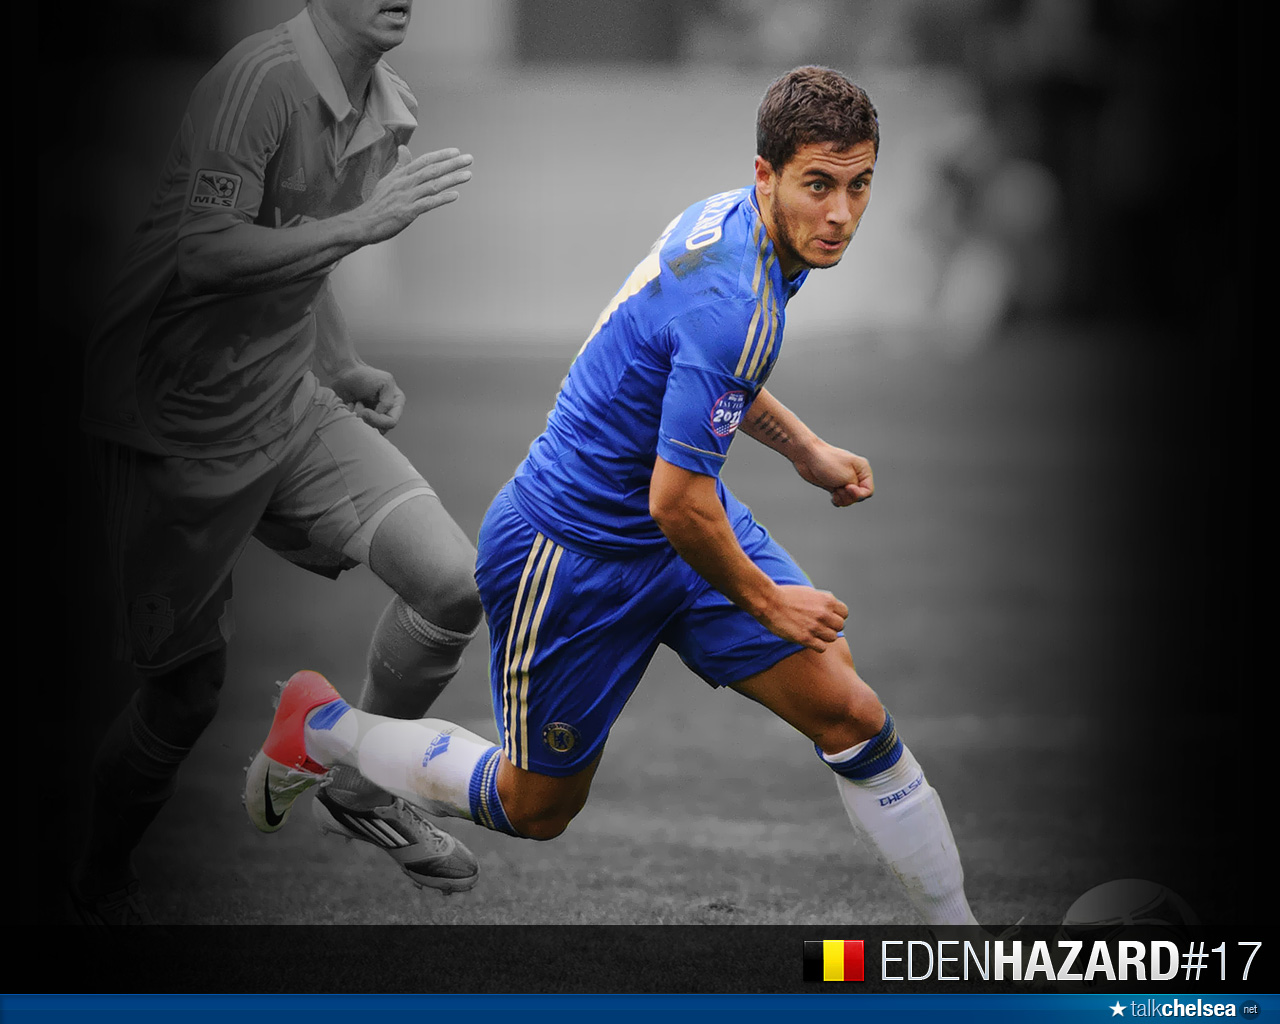 Eden Hazard Wallpaper - Graphics Forum - Talk Chelsea